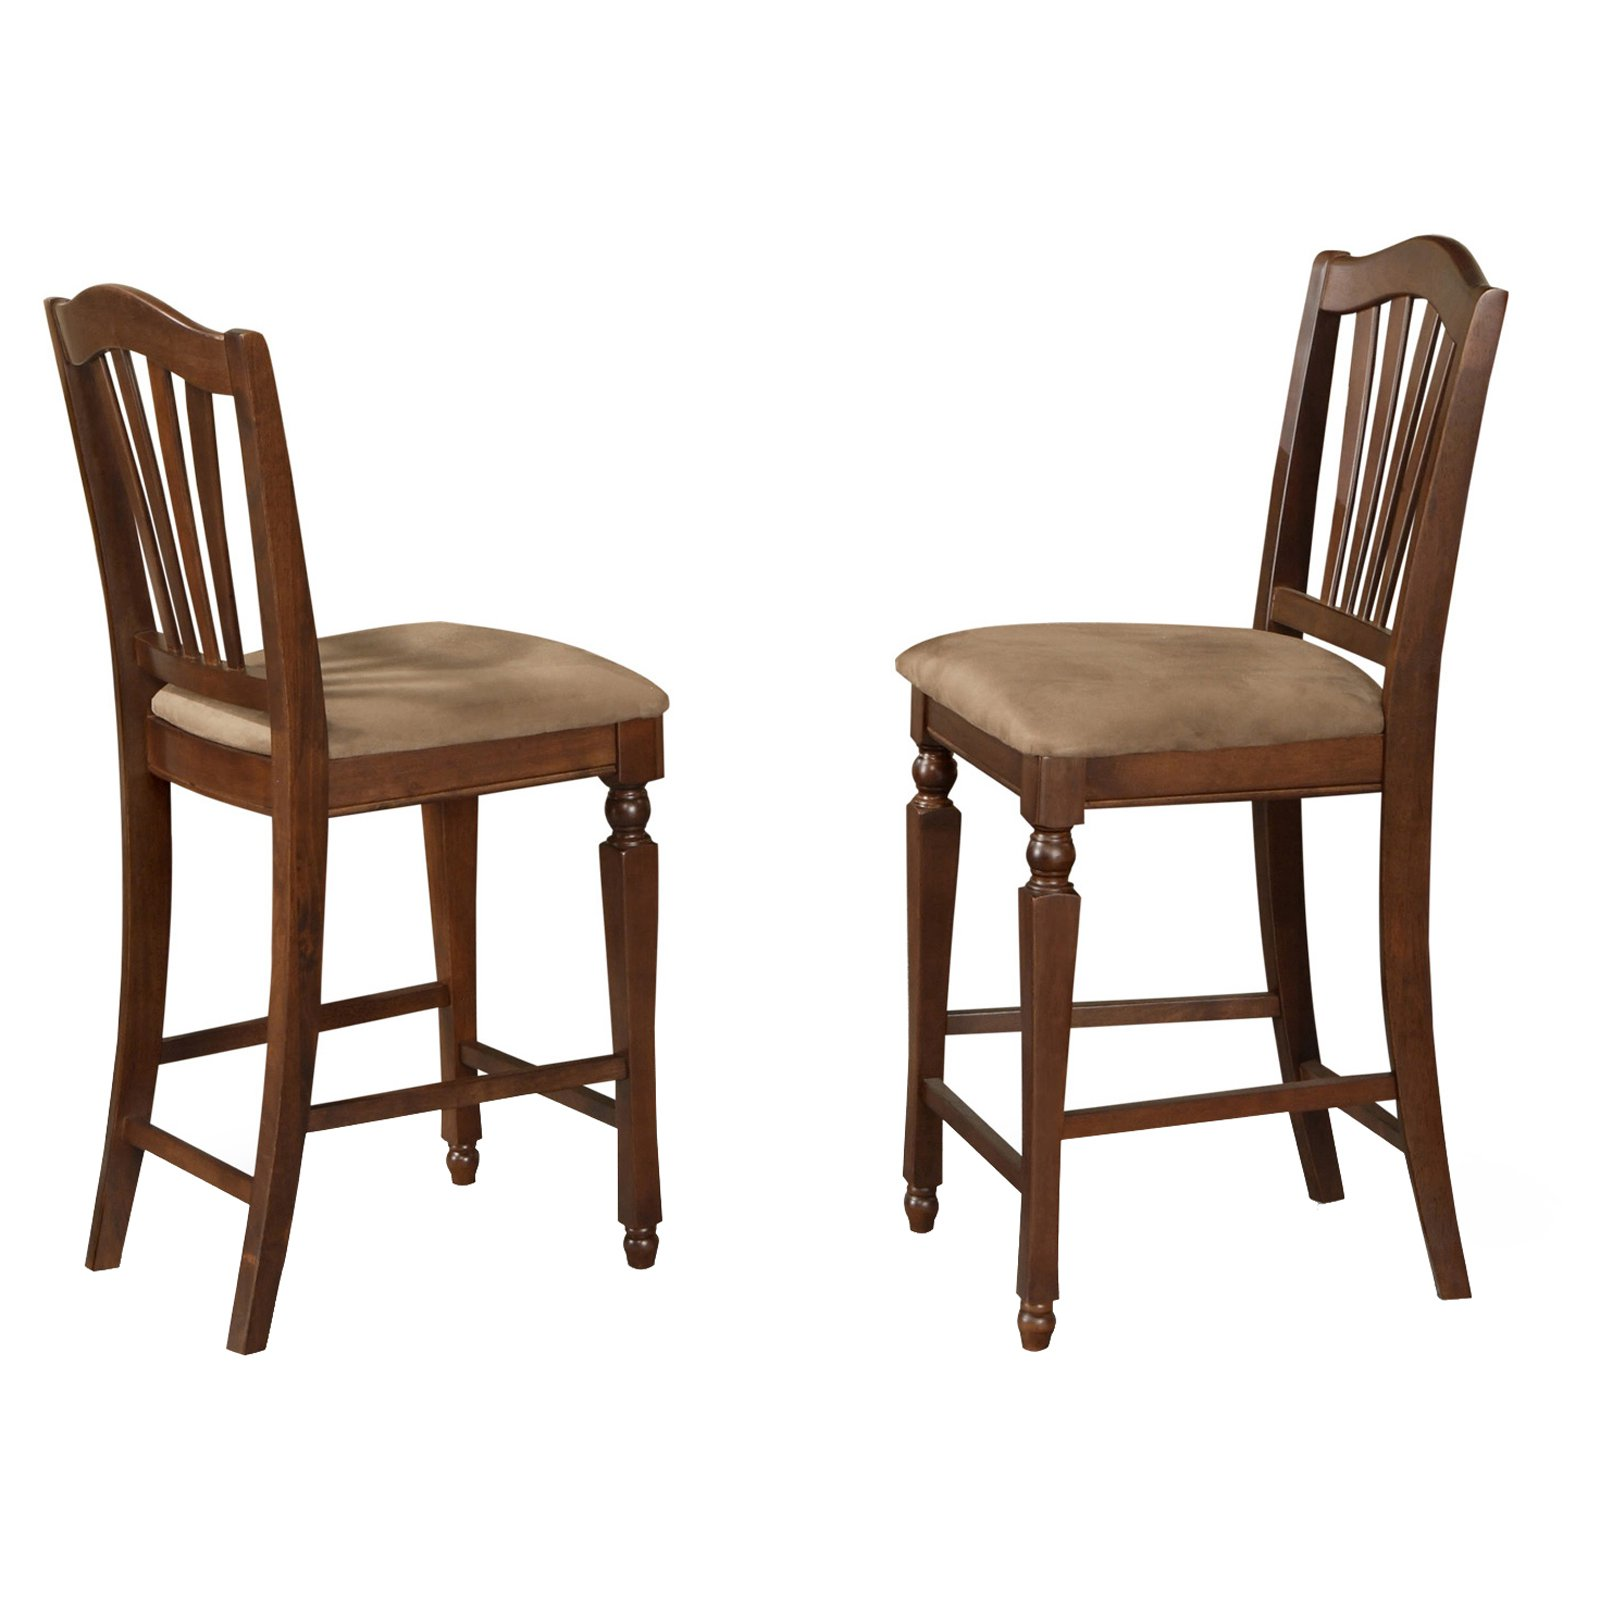 East West Furniture Chelsea Counter Height Dining Chair with Microfiber Seat - Set of 2